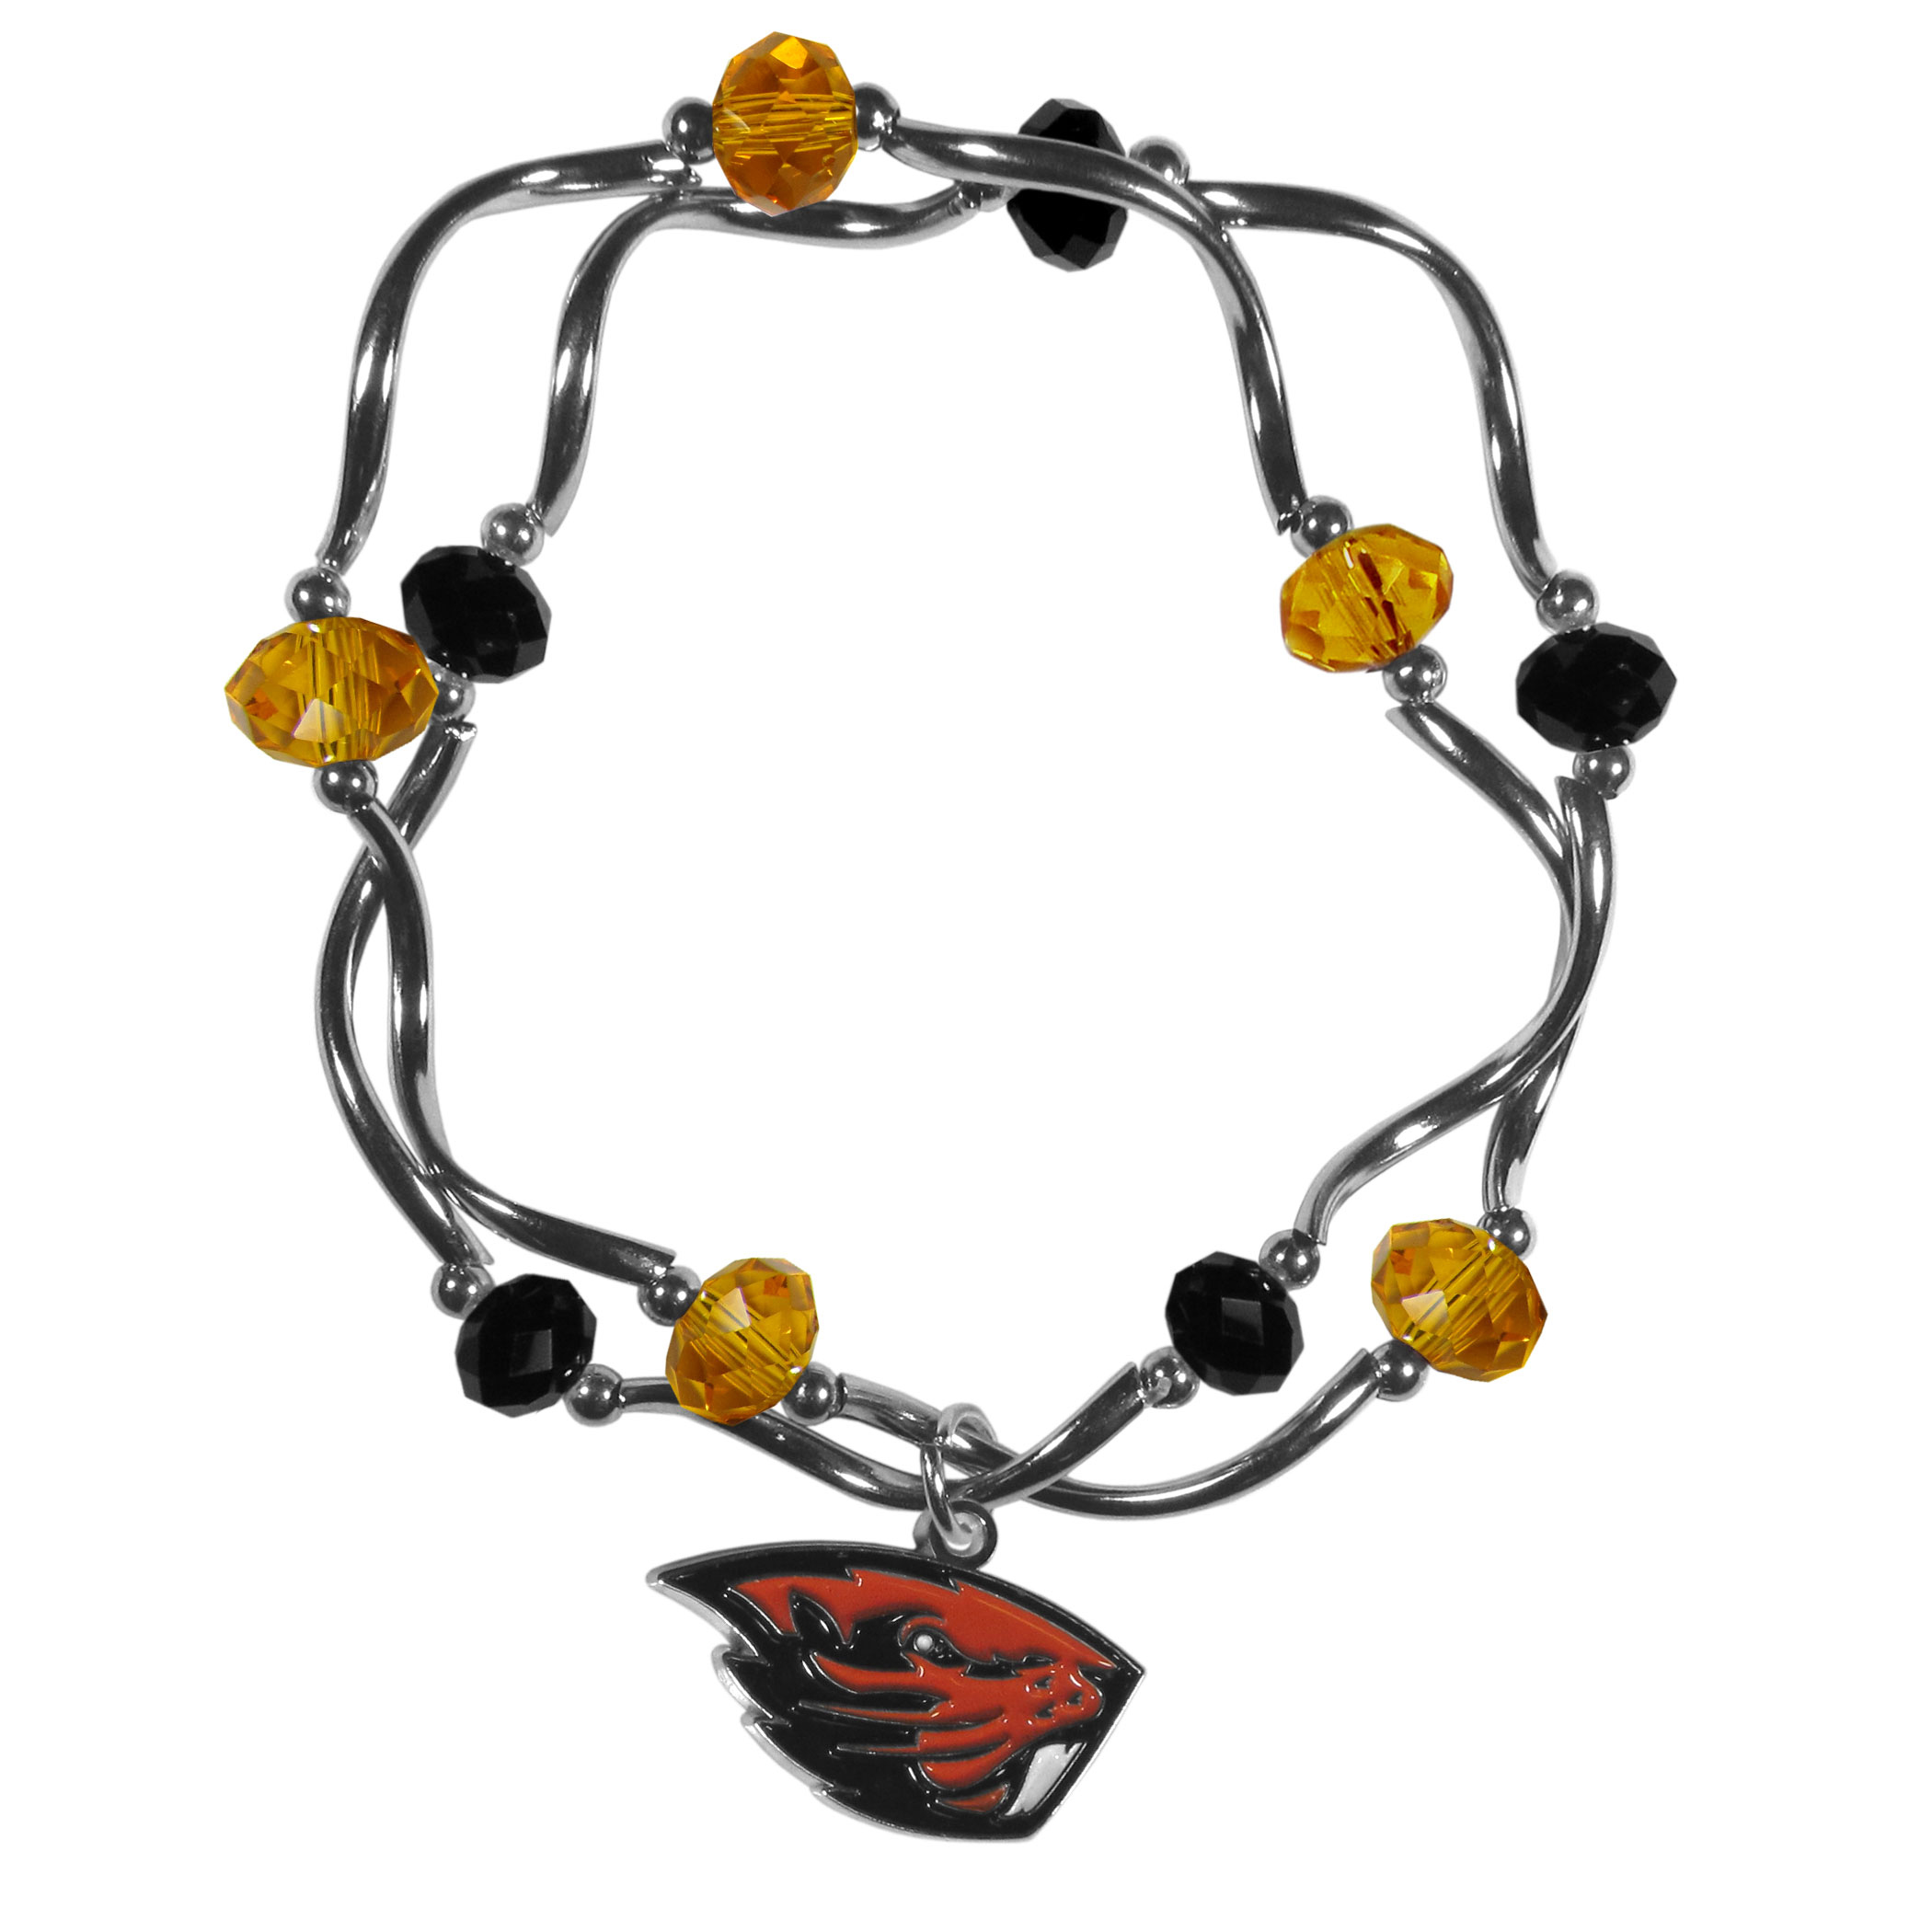 Oregon St. Beavers Crystal Bead Bracelet - This delicate bead bracelet has eye-catching team colored beads that are strung on 2 stretch cords that provide a comfortable and easy fit. The crystals are separated by beautiful helix beads in high polish chrome for a truly designer inspired look. The 2 strands of beads intertwine for a fun and stylish bracelet. This chic accessory is finished off with a Oregon St. Beavers team charm that has expertly carved detail and an enameled color finish. A contemporary look to thrill any female sports fan. Whether this a gift for yourself or someone special you cannot miss with this trend-setting fashion bracelet.